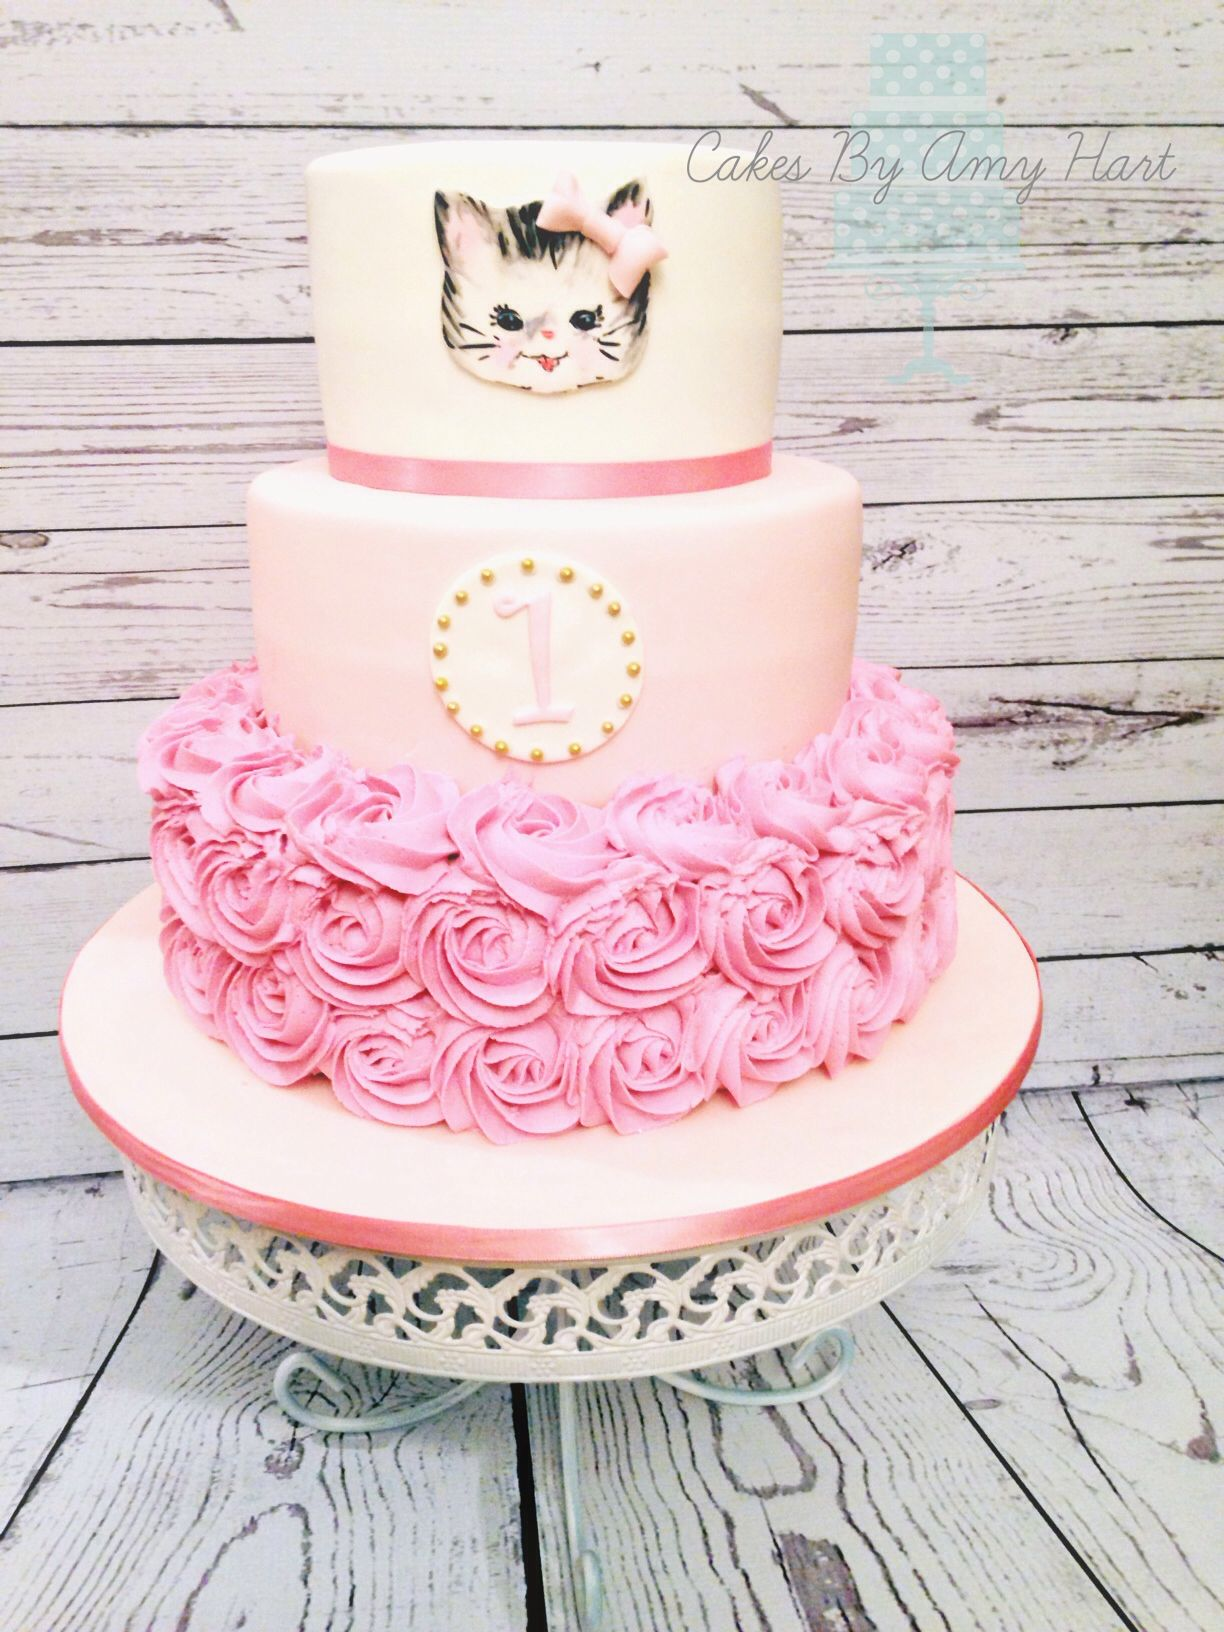 Pin By Anita Canales On Cupcakes And Things Hello Kitty Cupcakes Hello Kitty Cake Hello Kitty Birthday Party